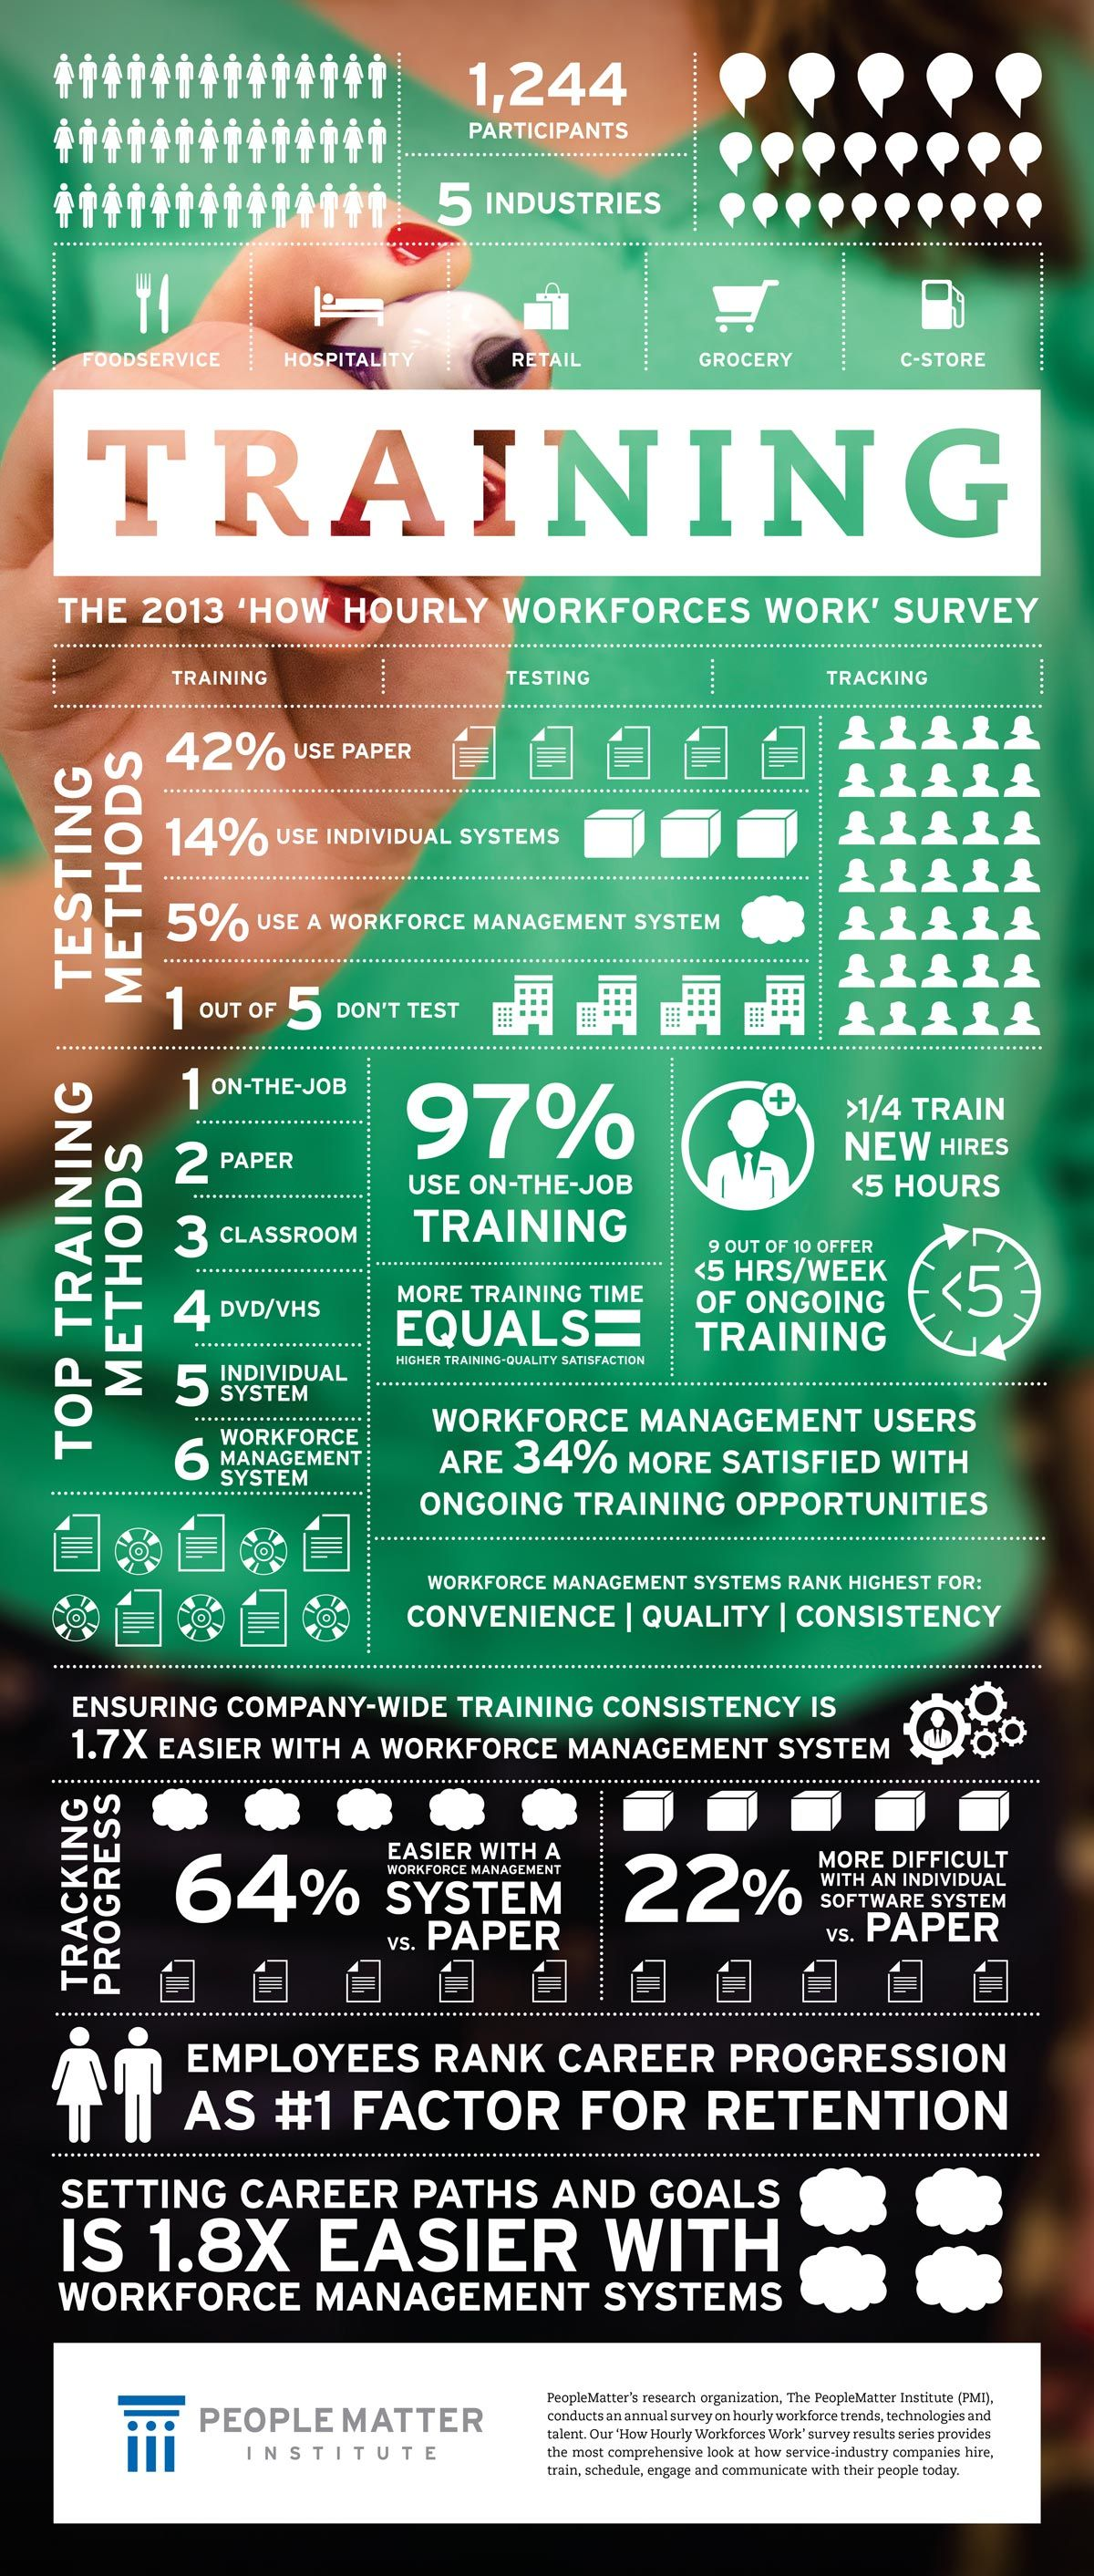 2013 How Hourly Workforces Work Survey Training Infographic Workforce Management Learning And Development